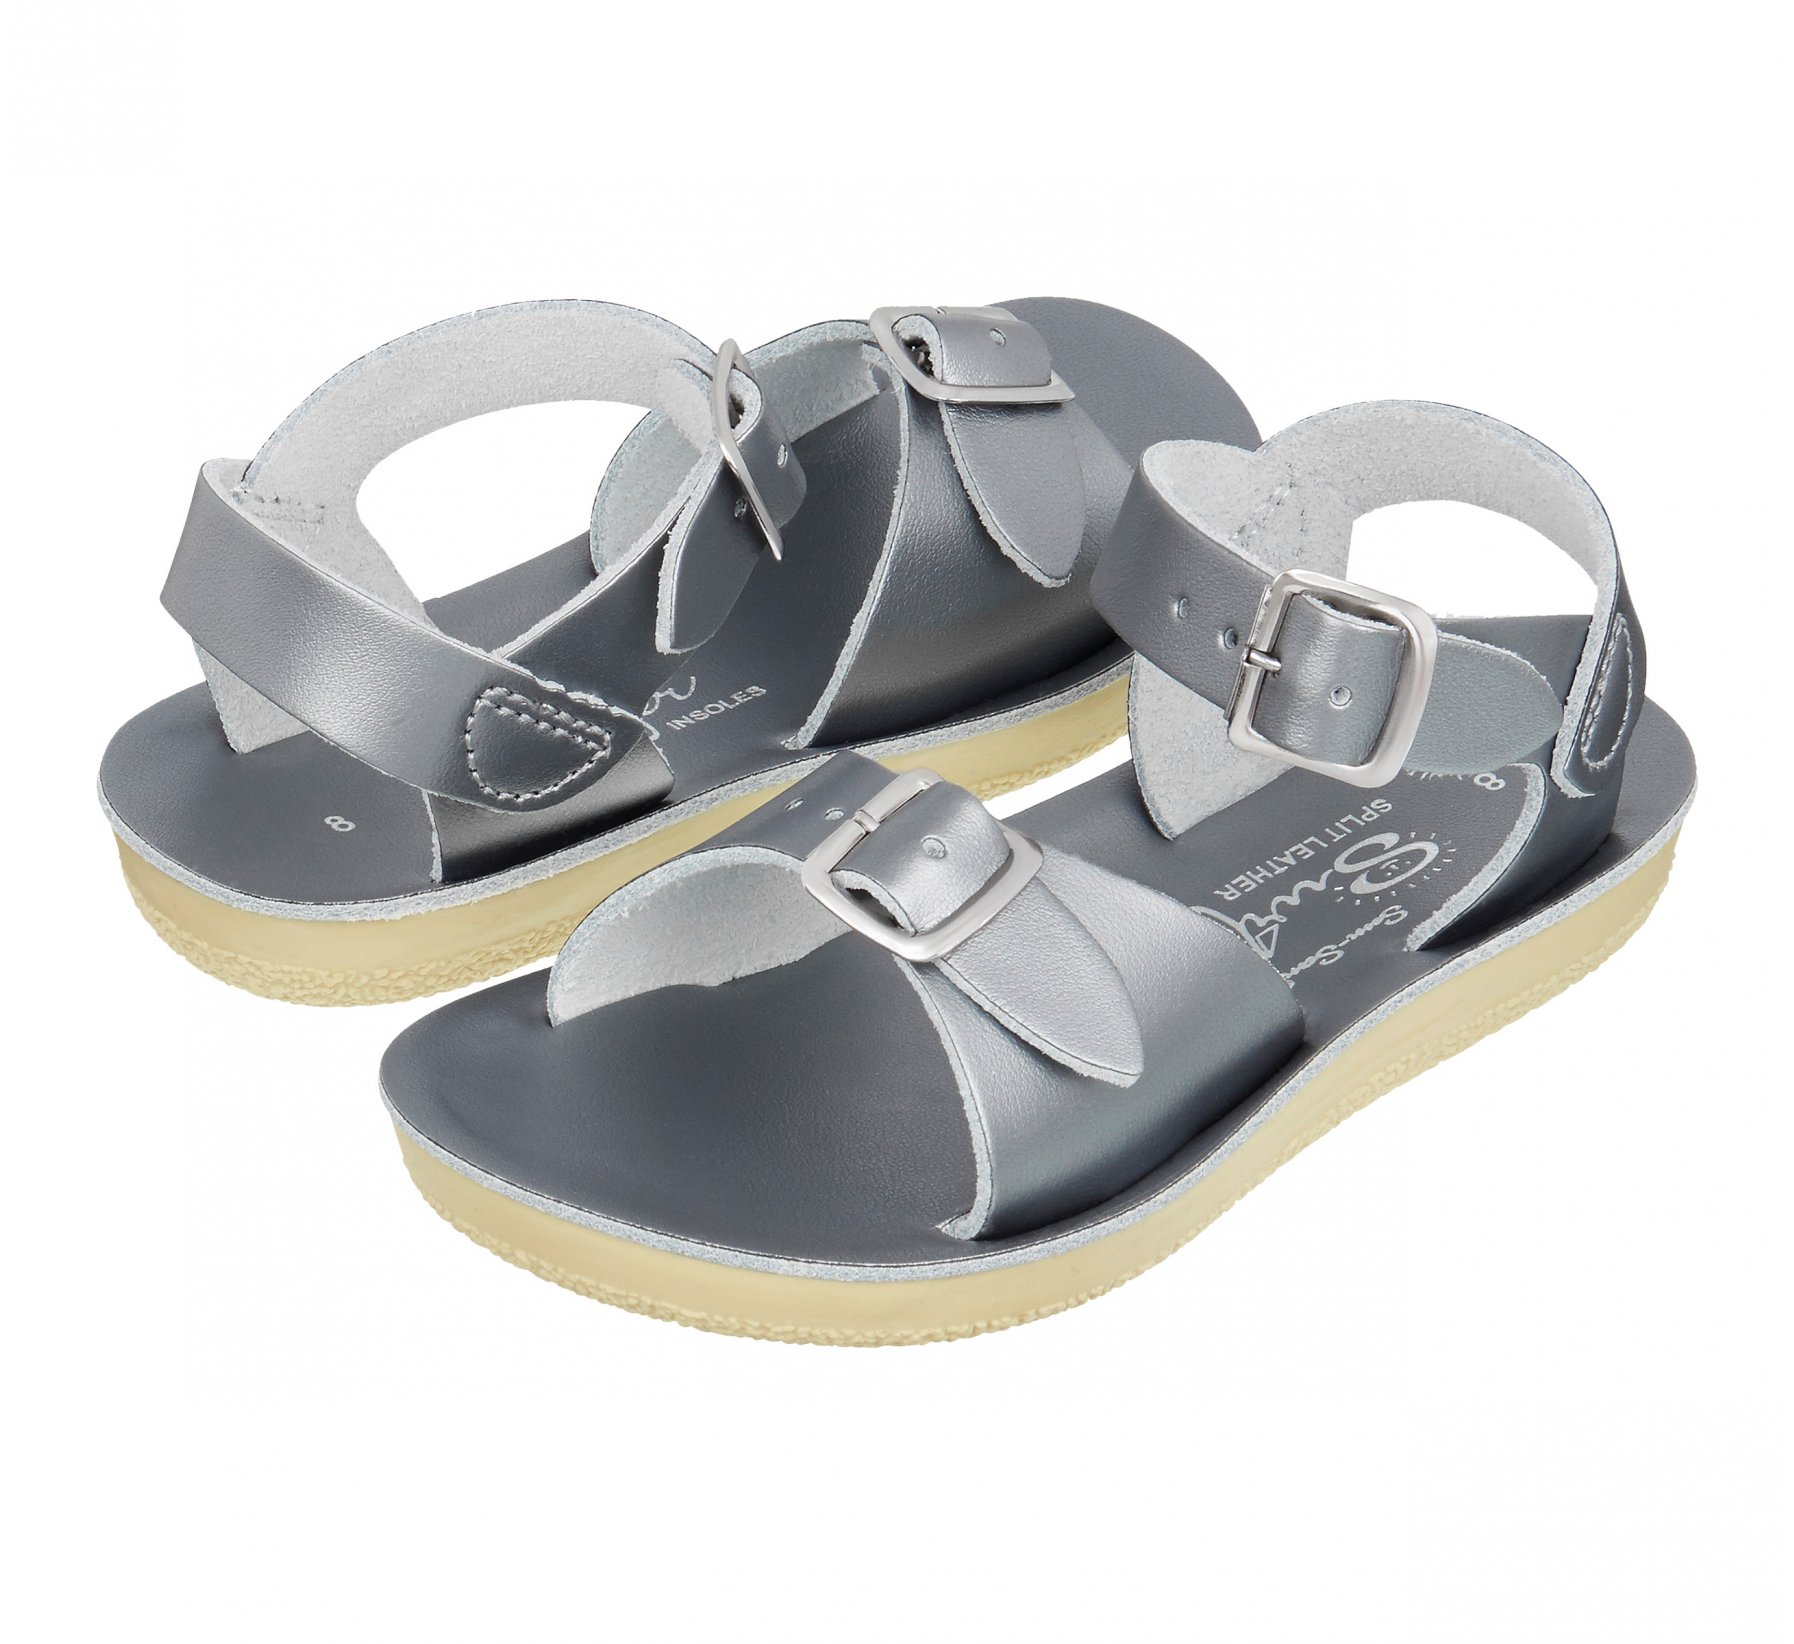 Surfer Pewter - Salt Water Sandals